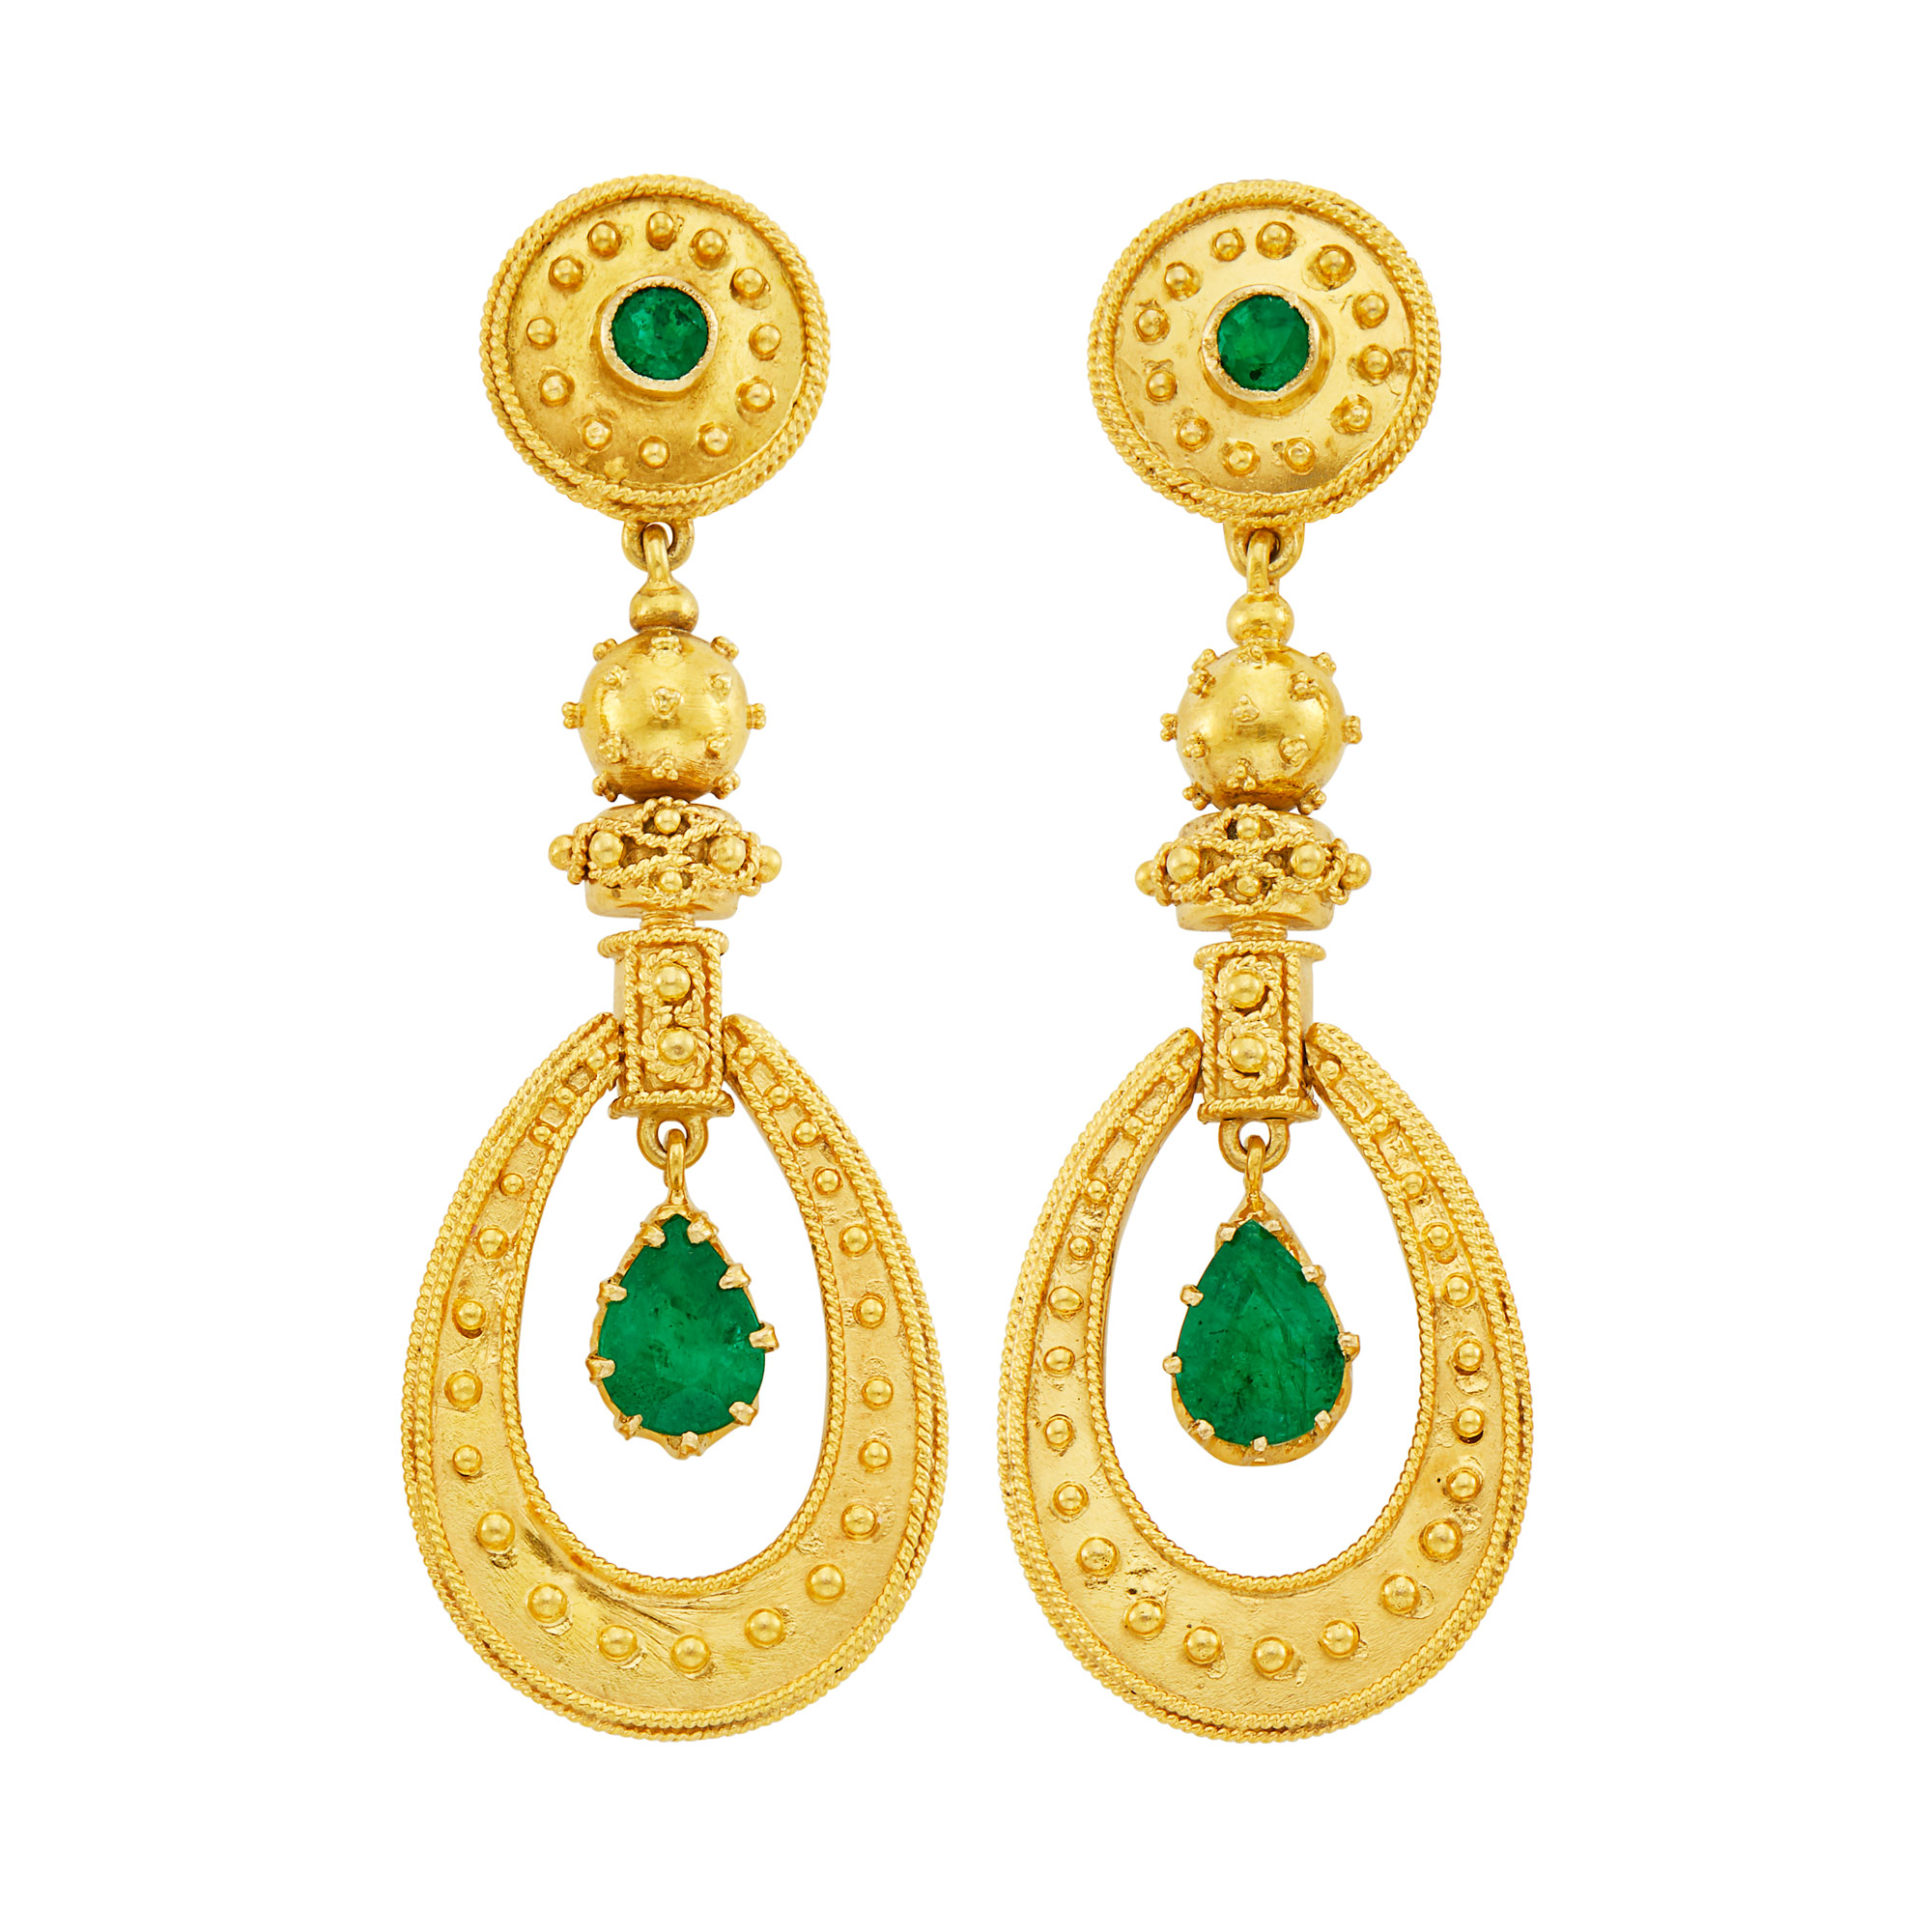 Lot image - Pair of Gold and Emerald Pendant-Earrings, Zolotas